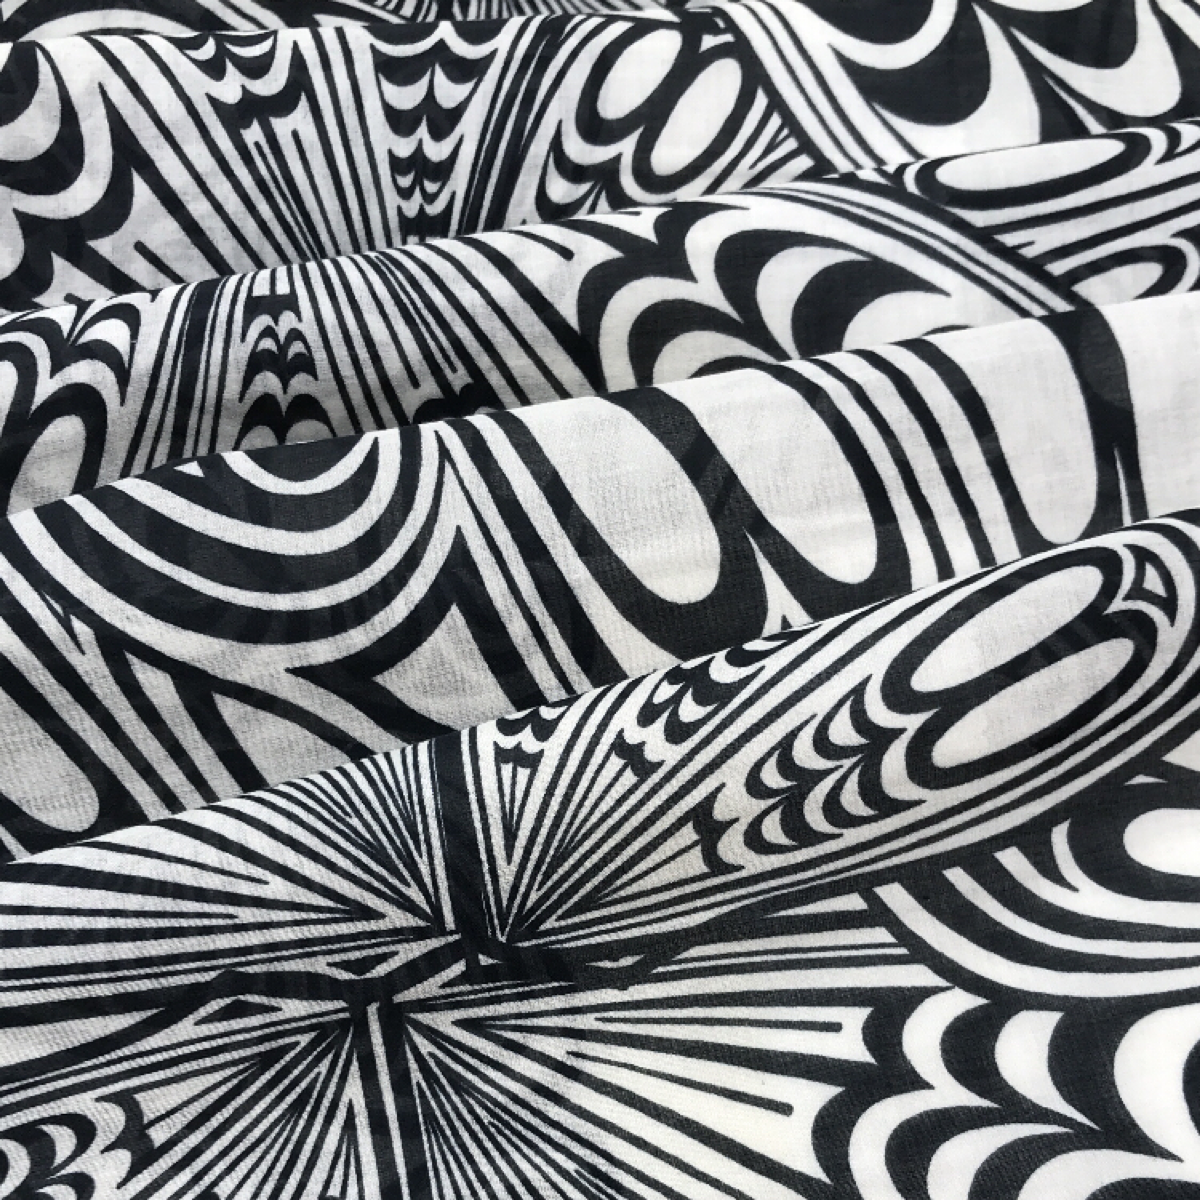 Black and White Printed Textile by Beach & Body by Clerici Tessuto